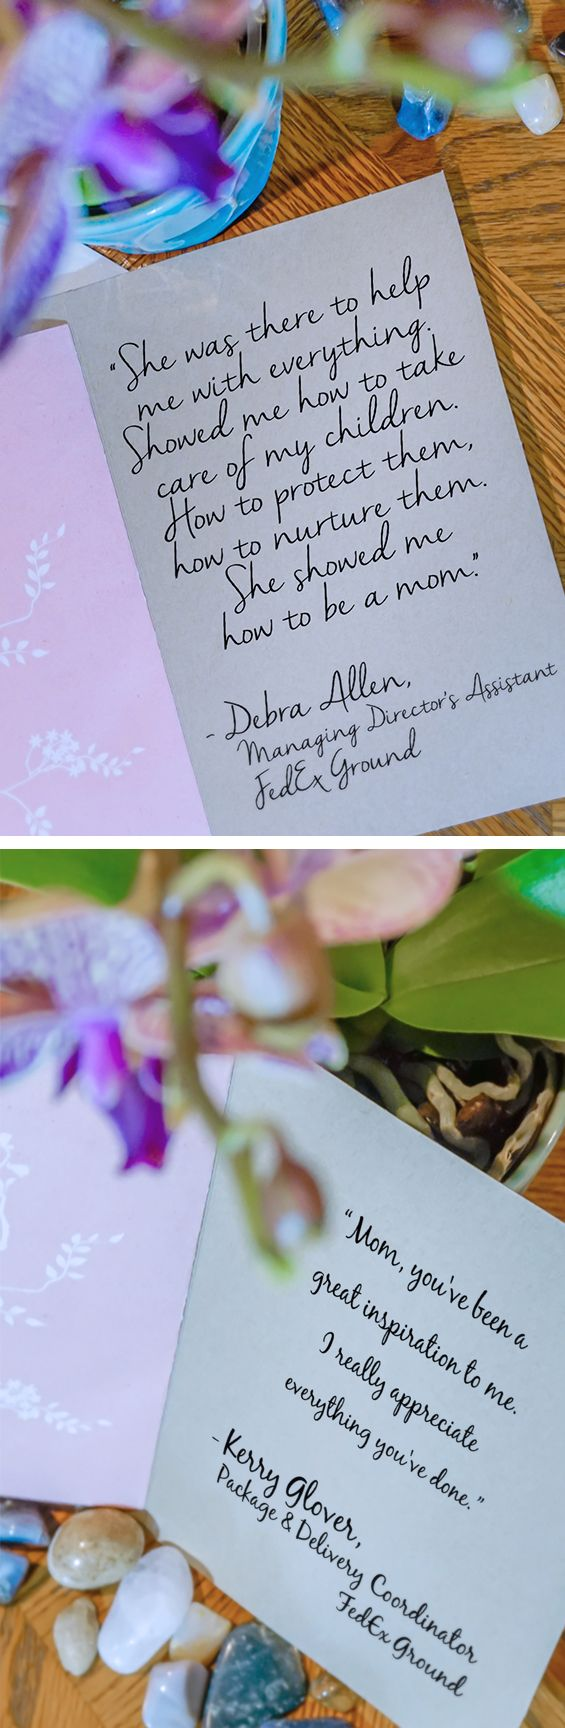 Our team members celebrate Mother's Day by sending messages of love and thankfulness. We're happy to be able to deliver it for them!